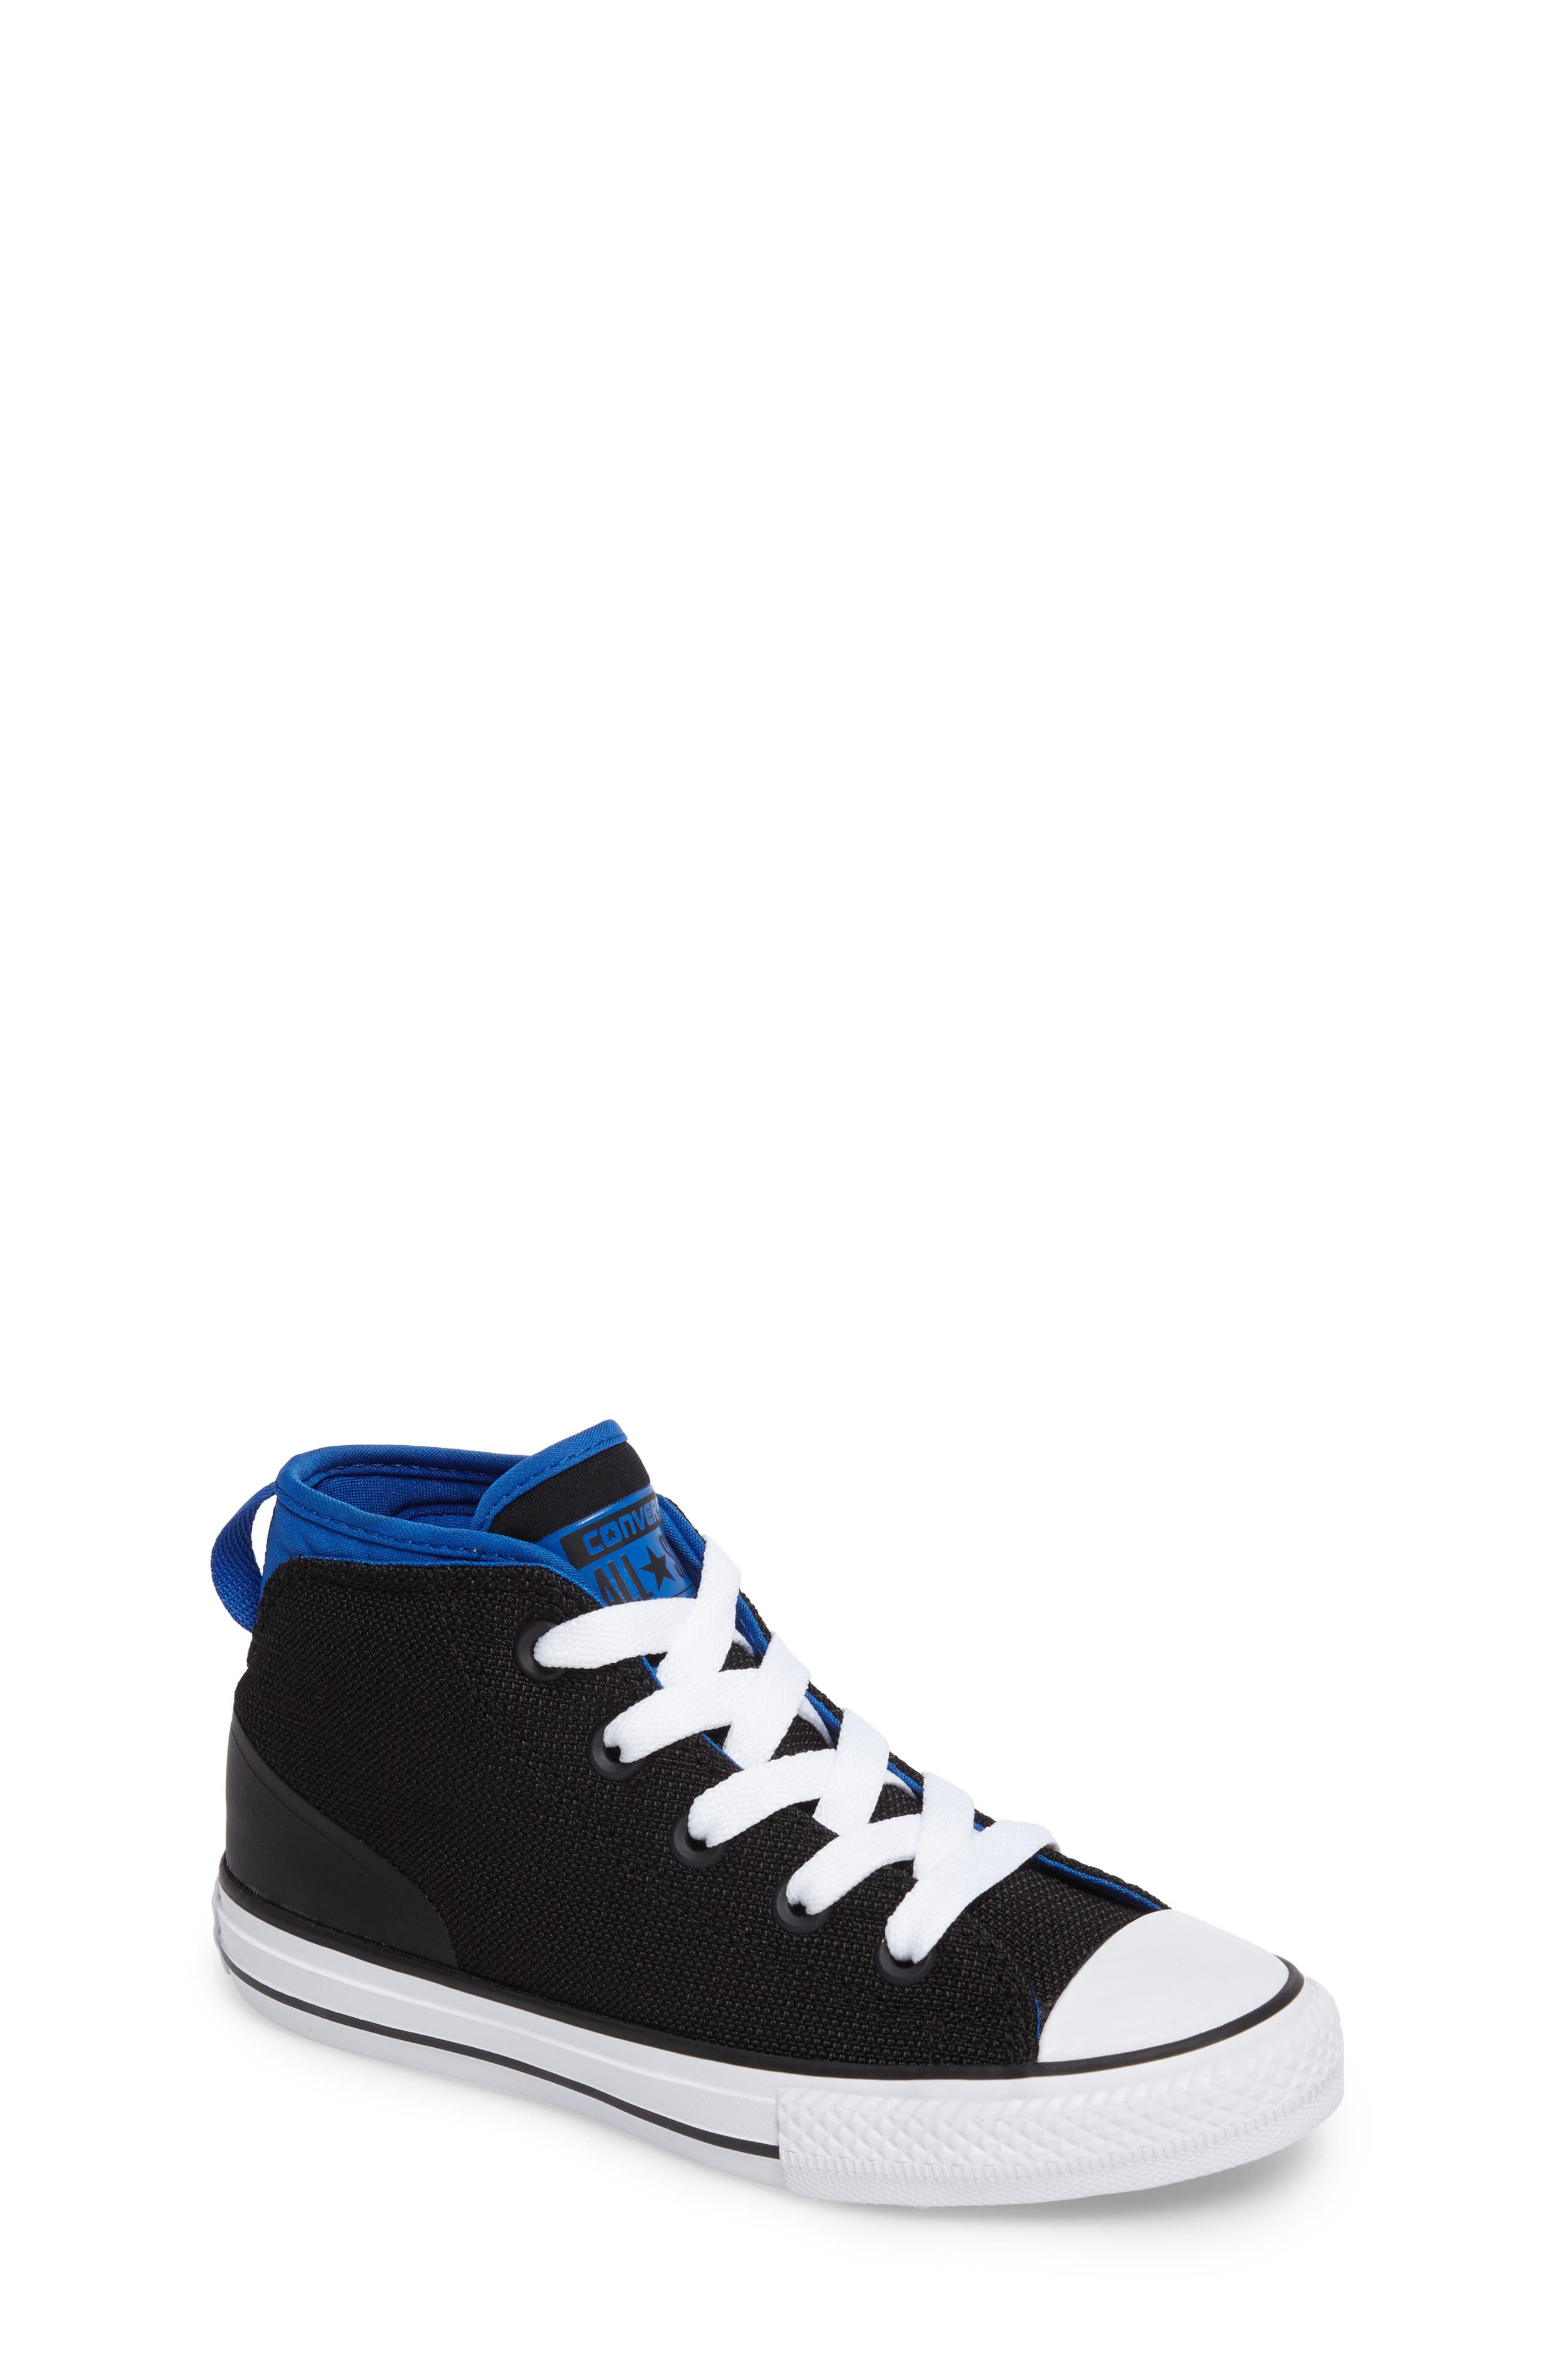 Chuck Taylor<sup>®</sup> All Star<sup>®</sup> Syde Street High Top Sneaker,                         Main,                         color, 001